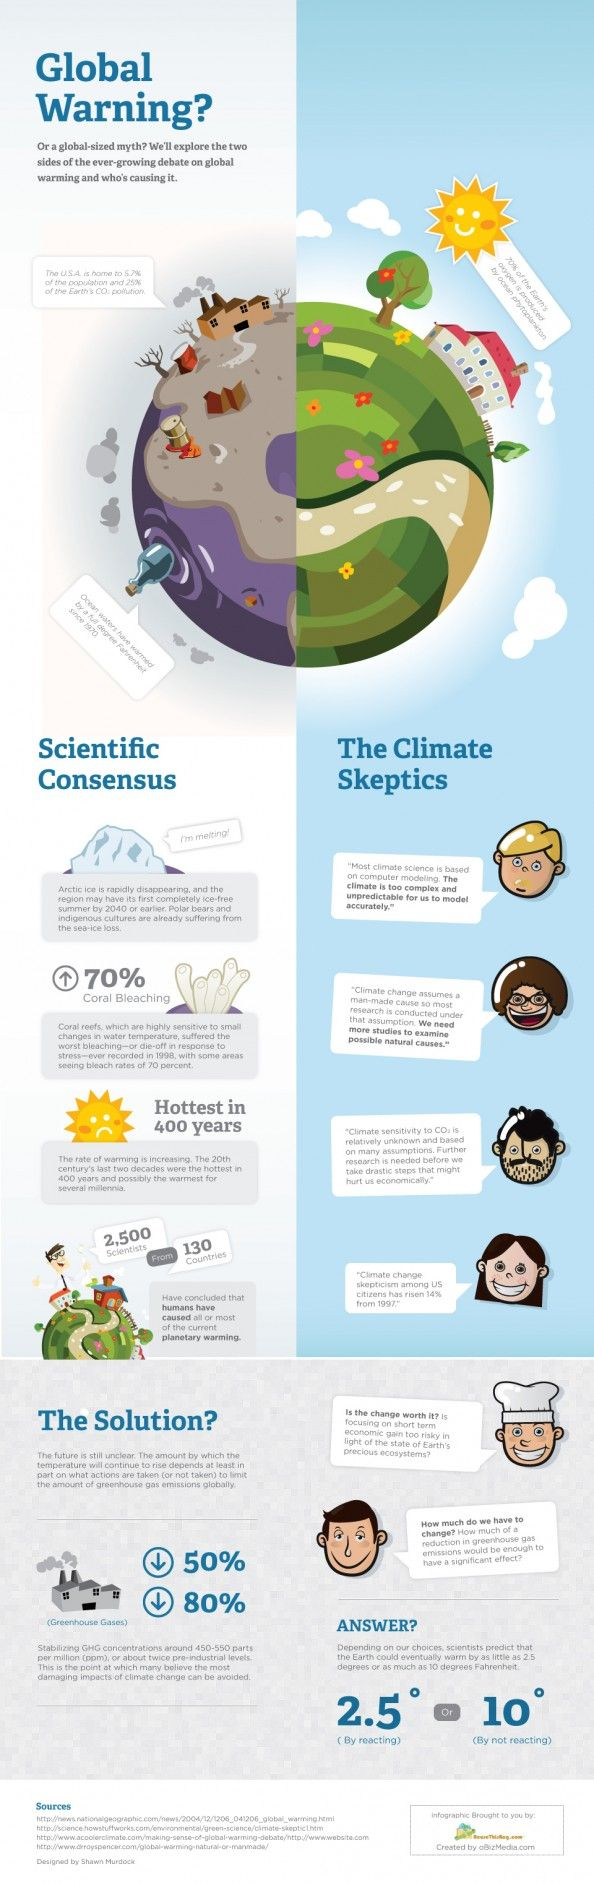 This infographic explores the two sides of the ever growing debate on global warming and who is causing it.